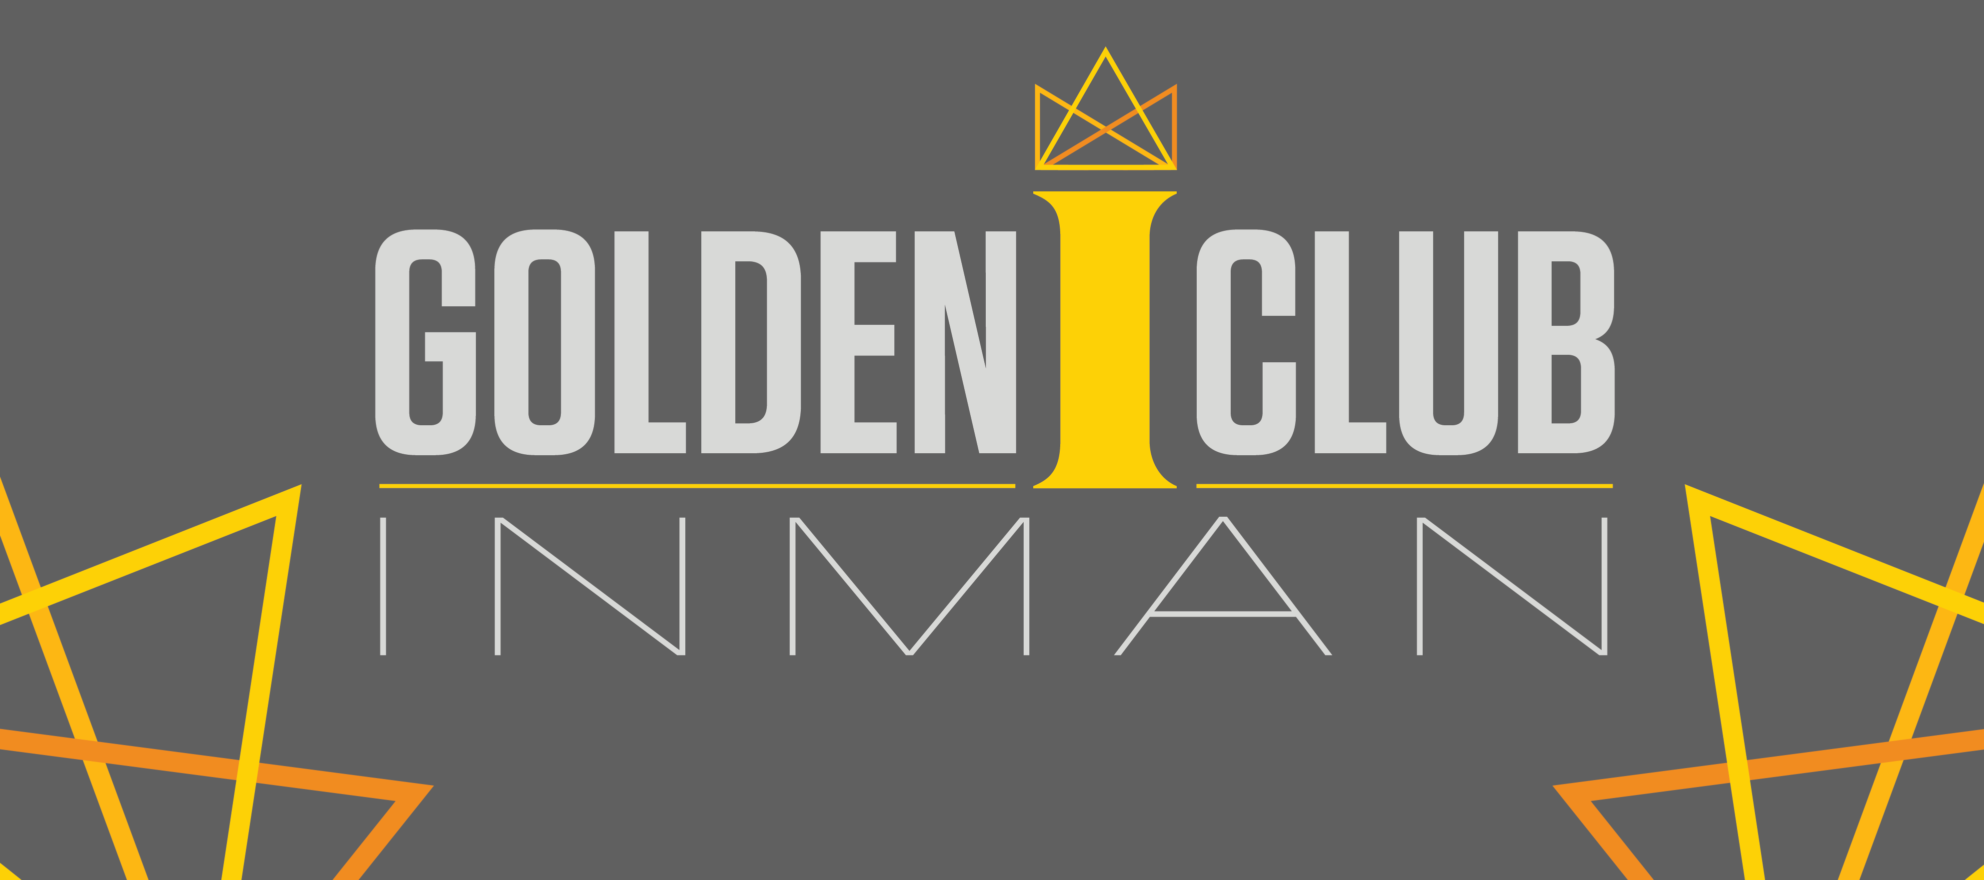 Announcing the Inman Golden I Club